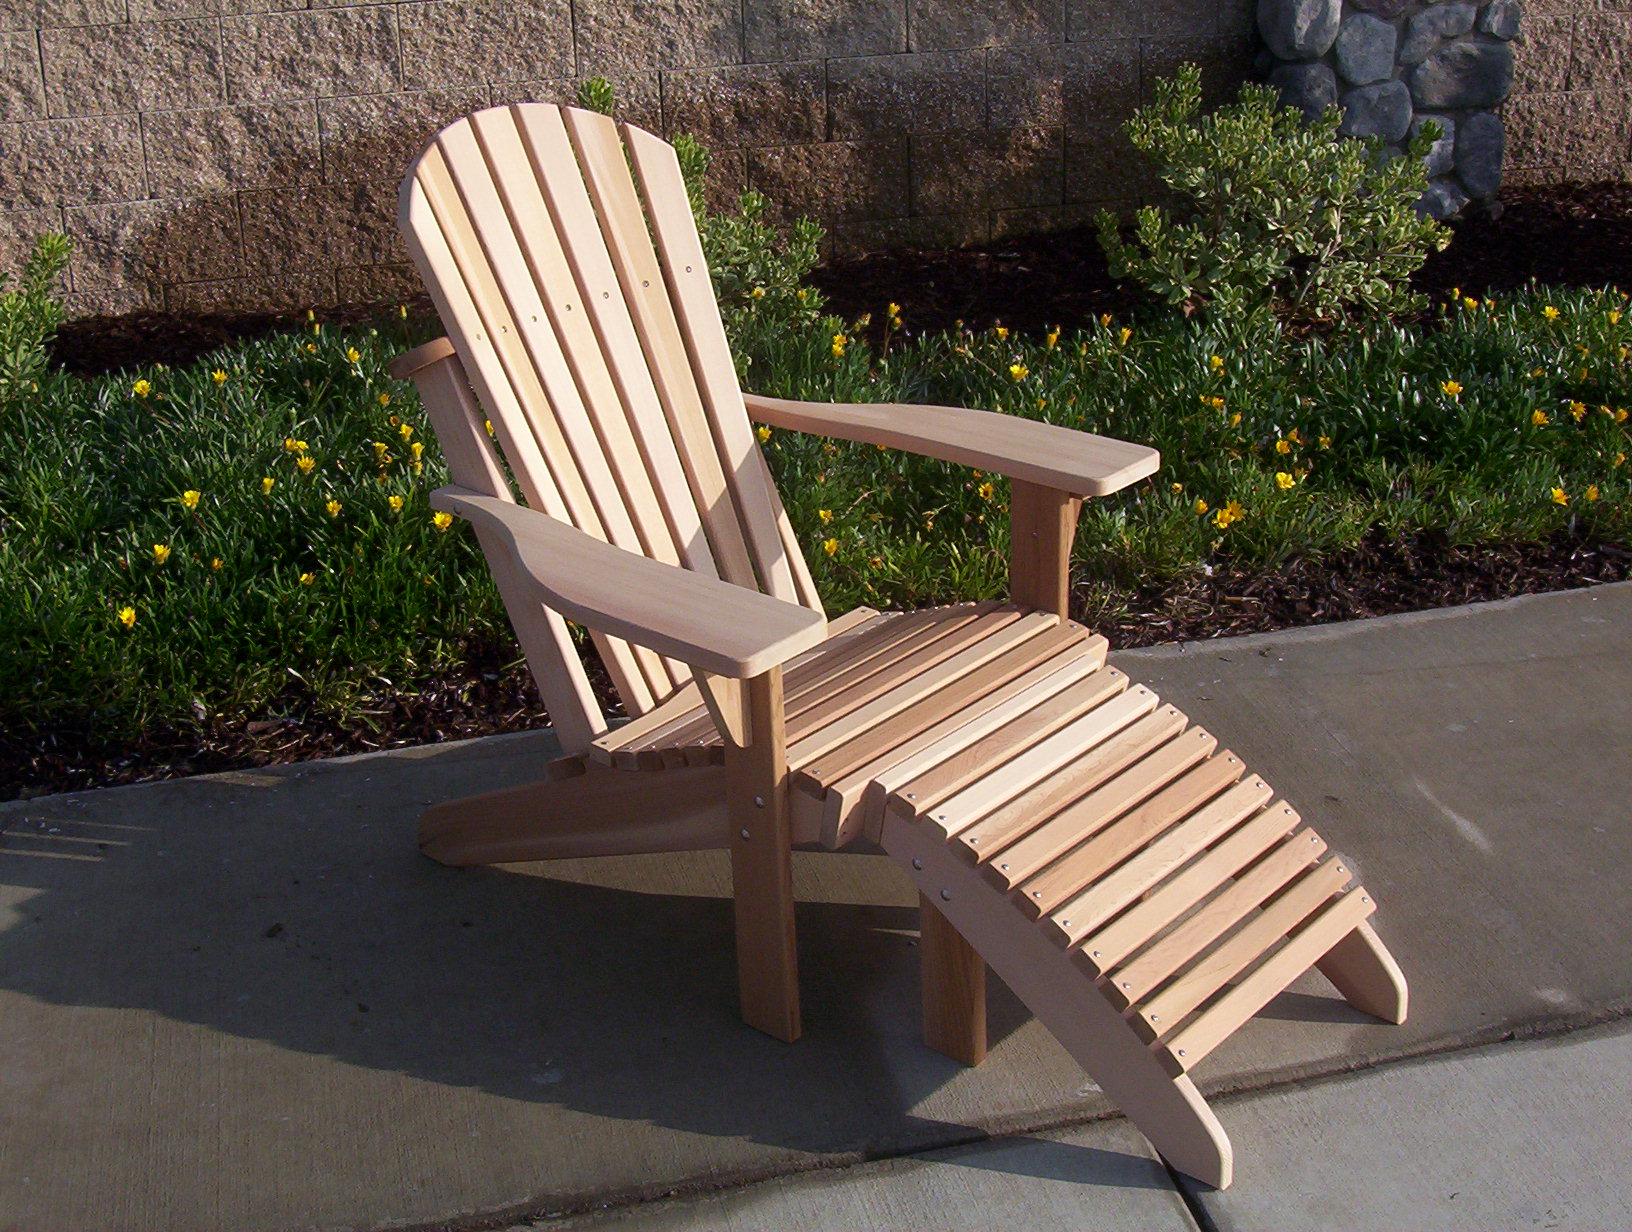 Adirondack Chairs With Footrest For Well Known Spring Garden Cedar (View 3 of 25)